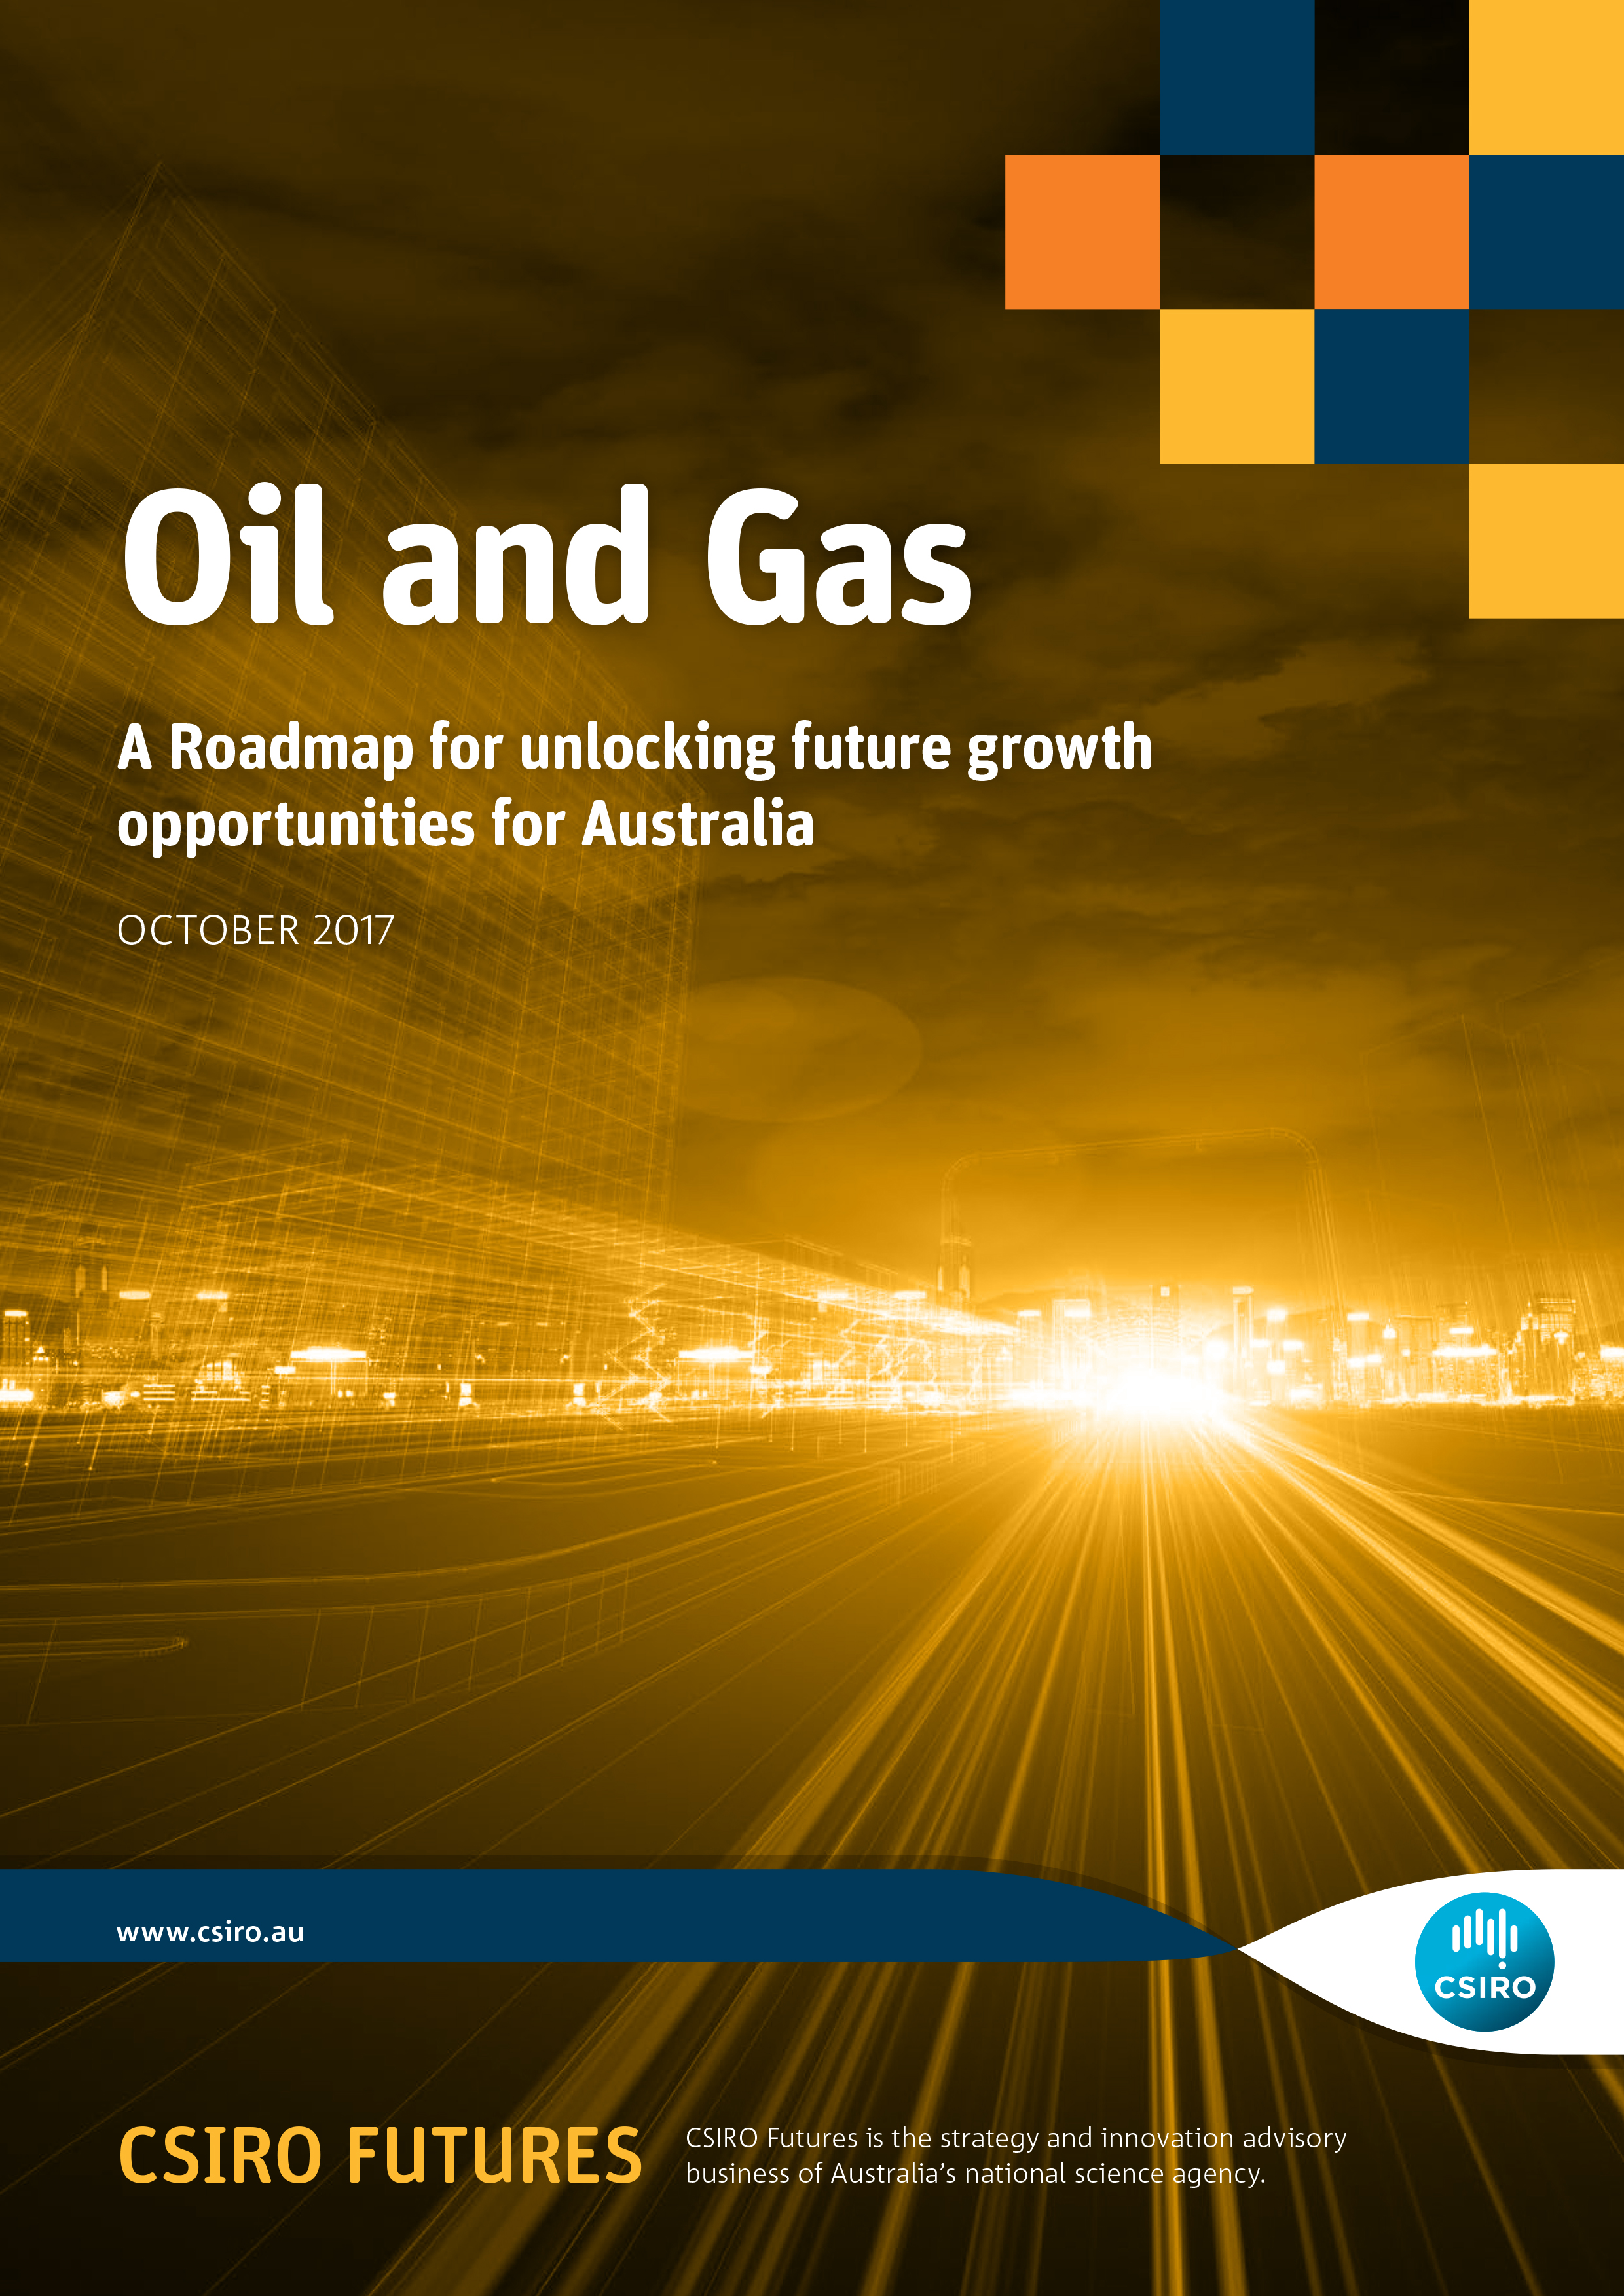 Oil and Gas - A Roadmap for unlocking future growth opportunities for Australia